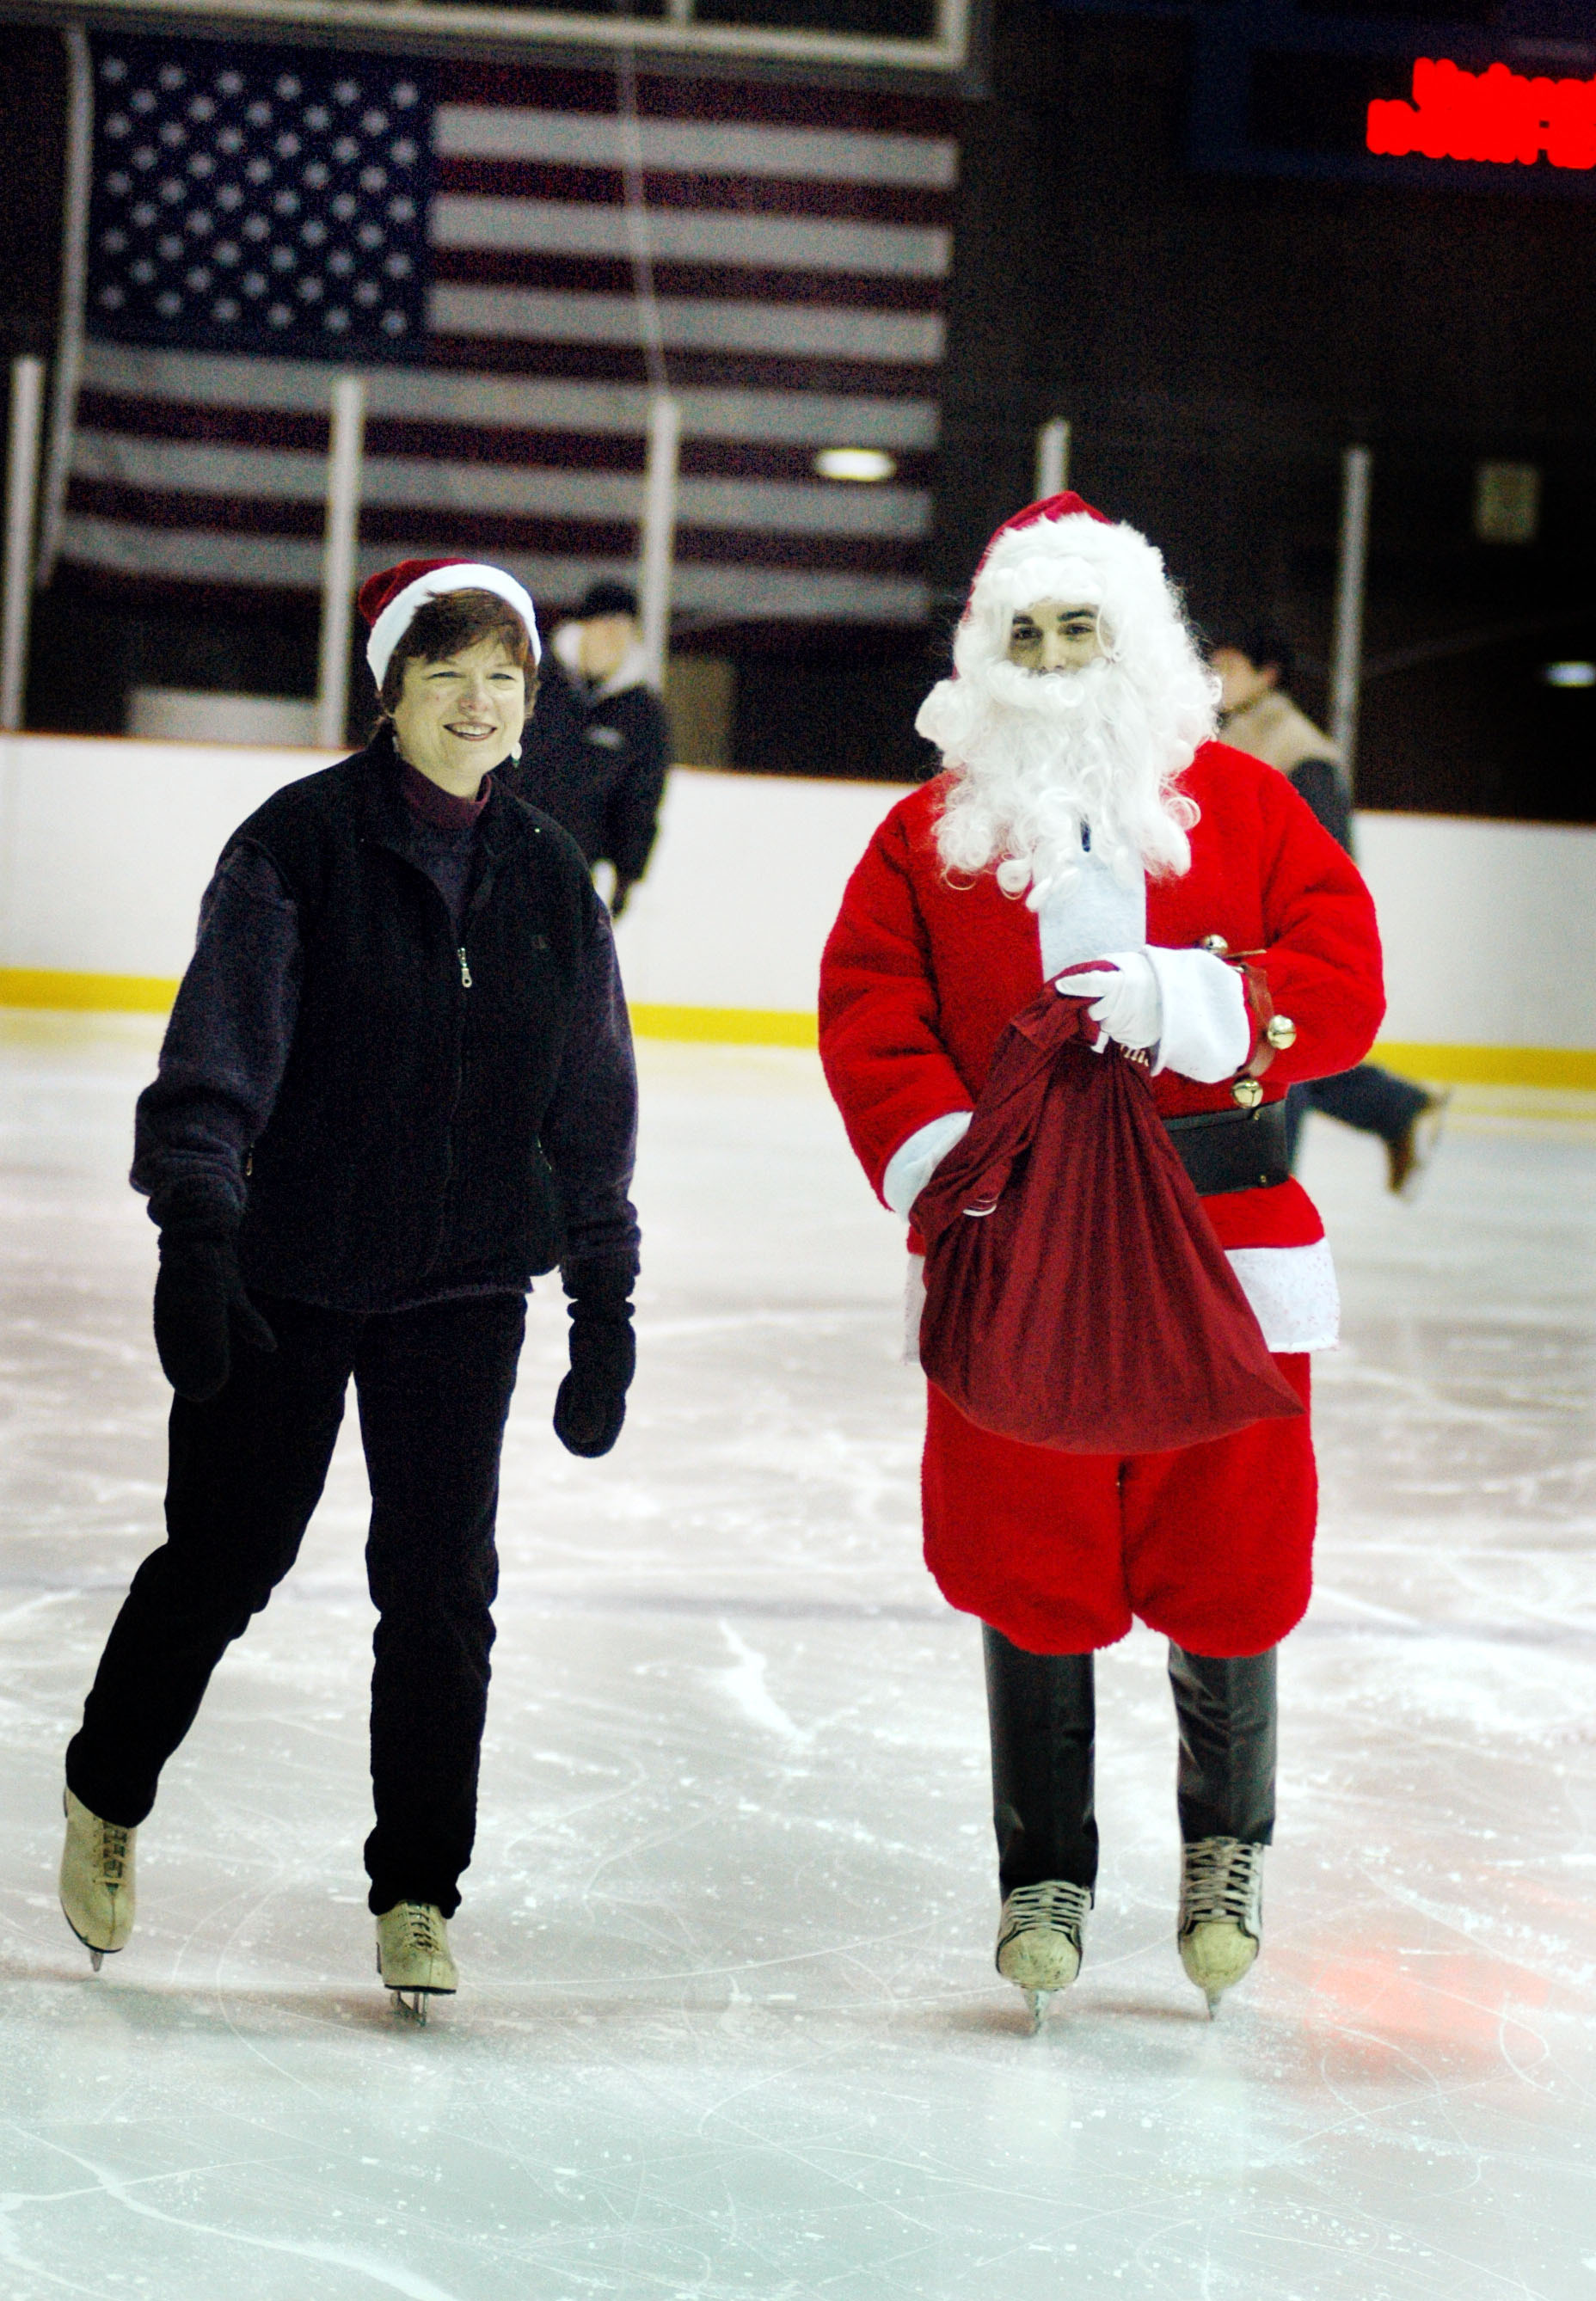 d63d86084060ea59dc58_Skating_with_Santa.jpg